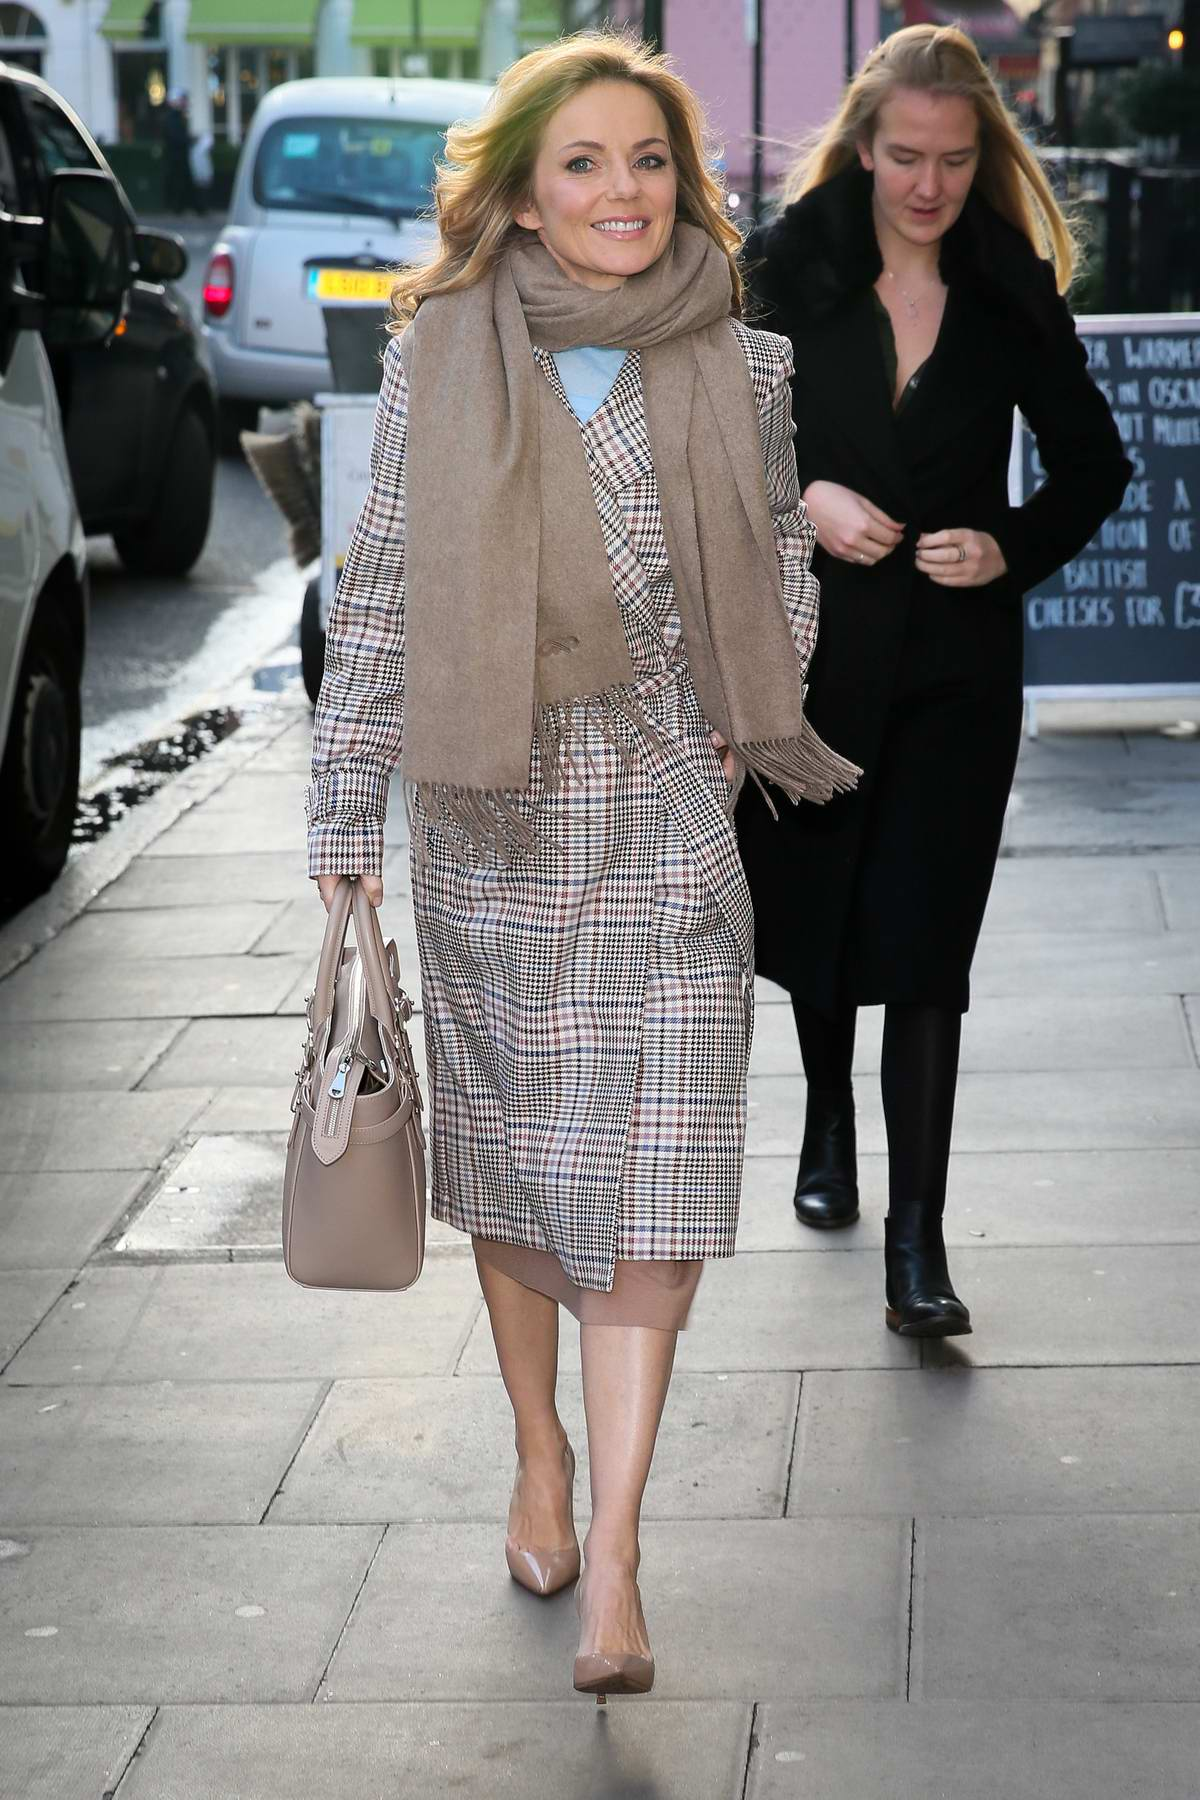 Geri Halliwell Horner arrives to promote BBC's 'All Together Now' at the Charlotte Street Hotel in London, UK